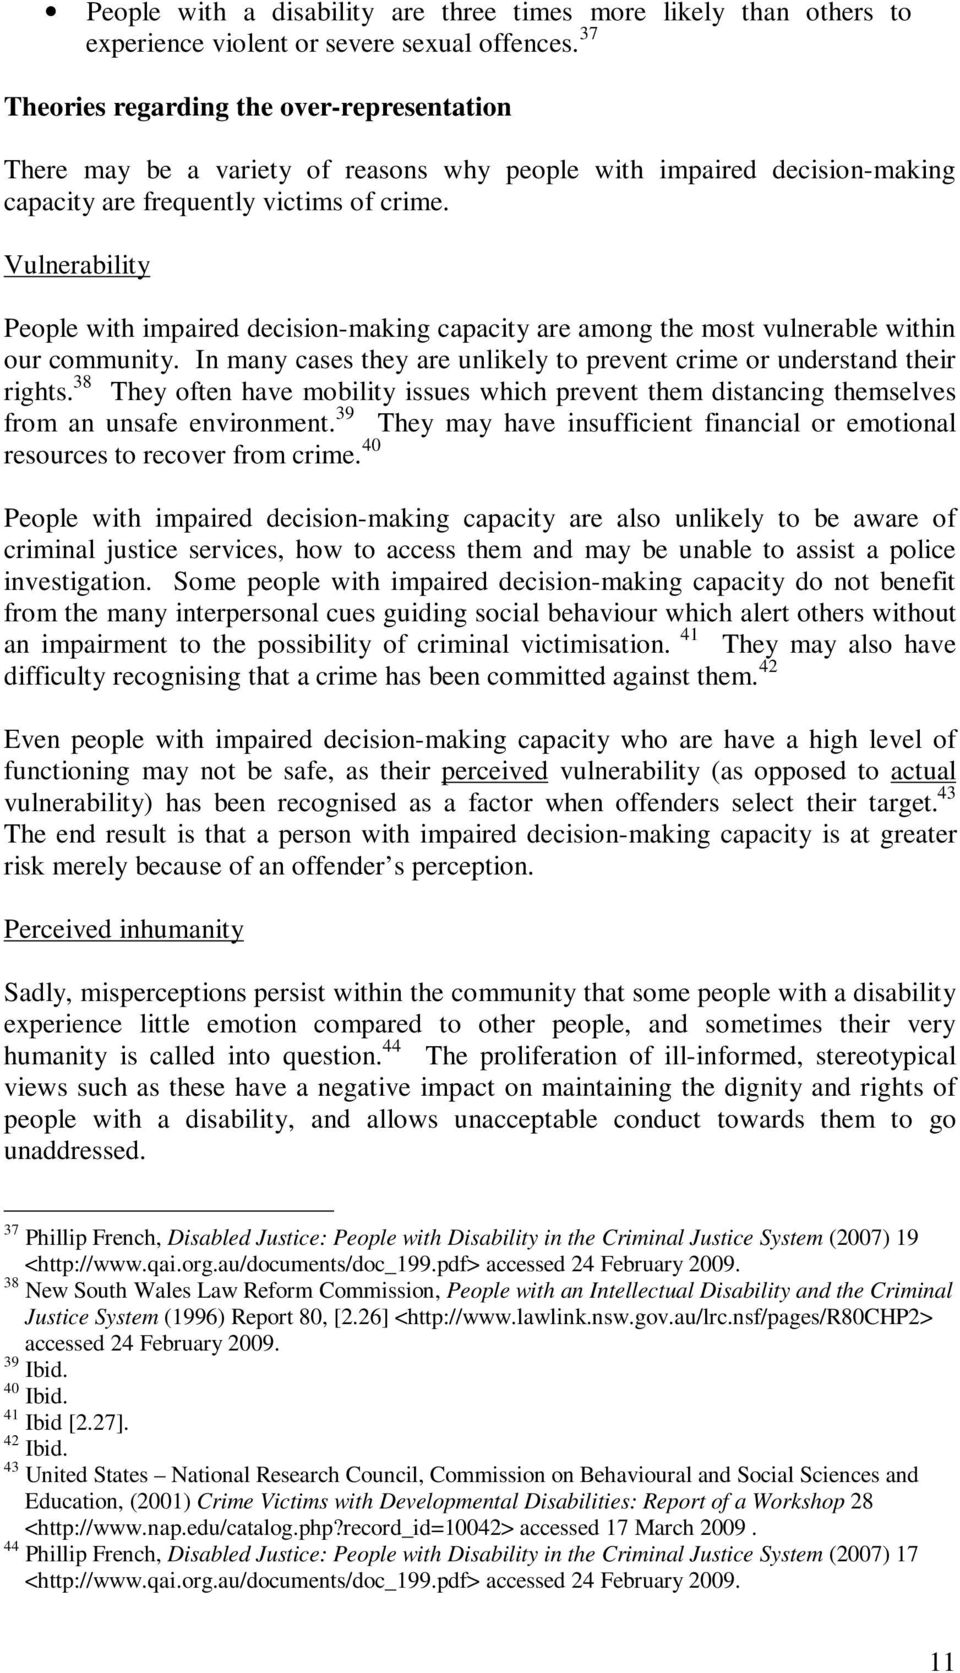 Vulnerability People with impaired decision-making capacity are among the most vulnerable within our community. In many cases they are unlikely to prevent crime or understand their rights.